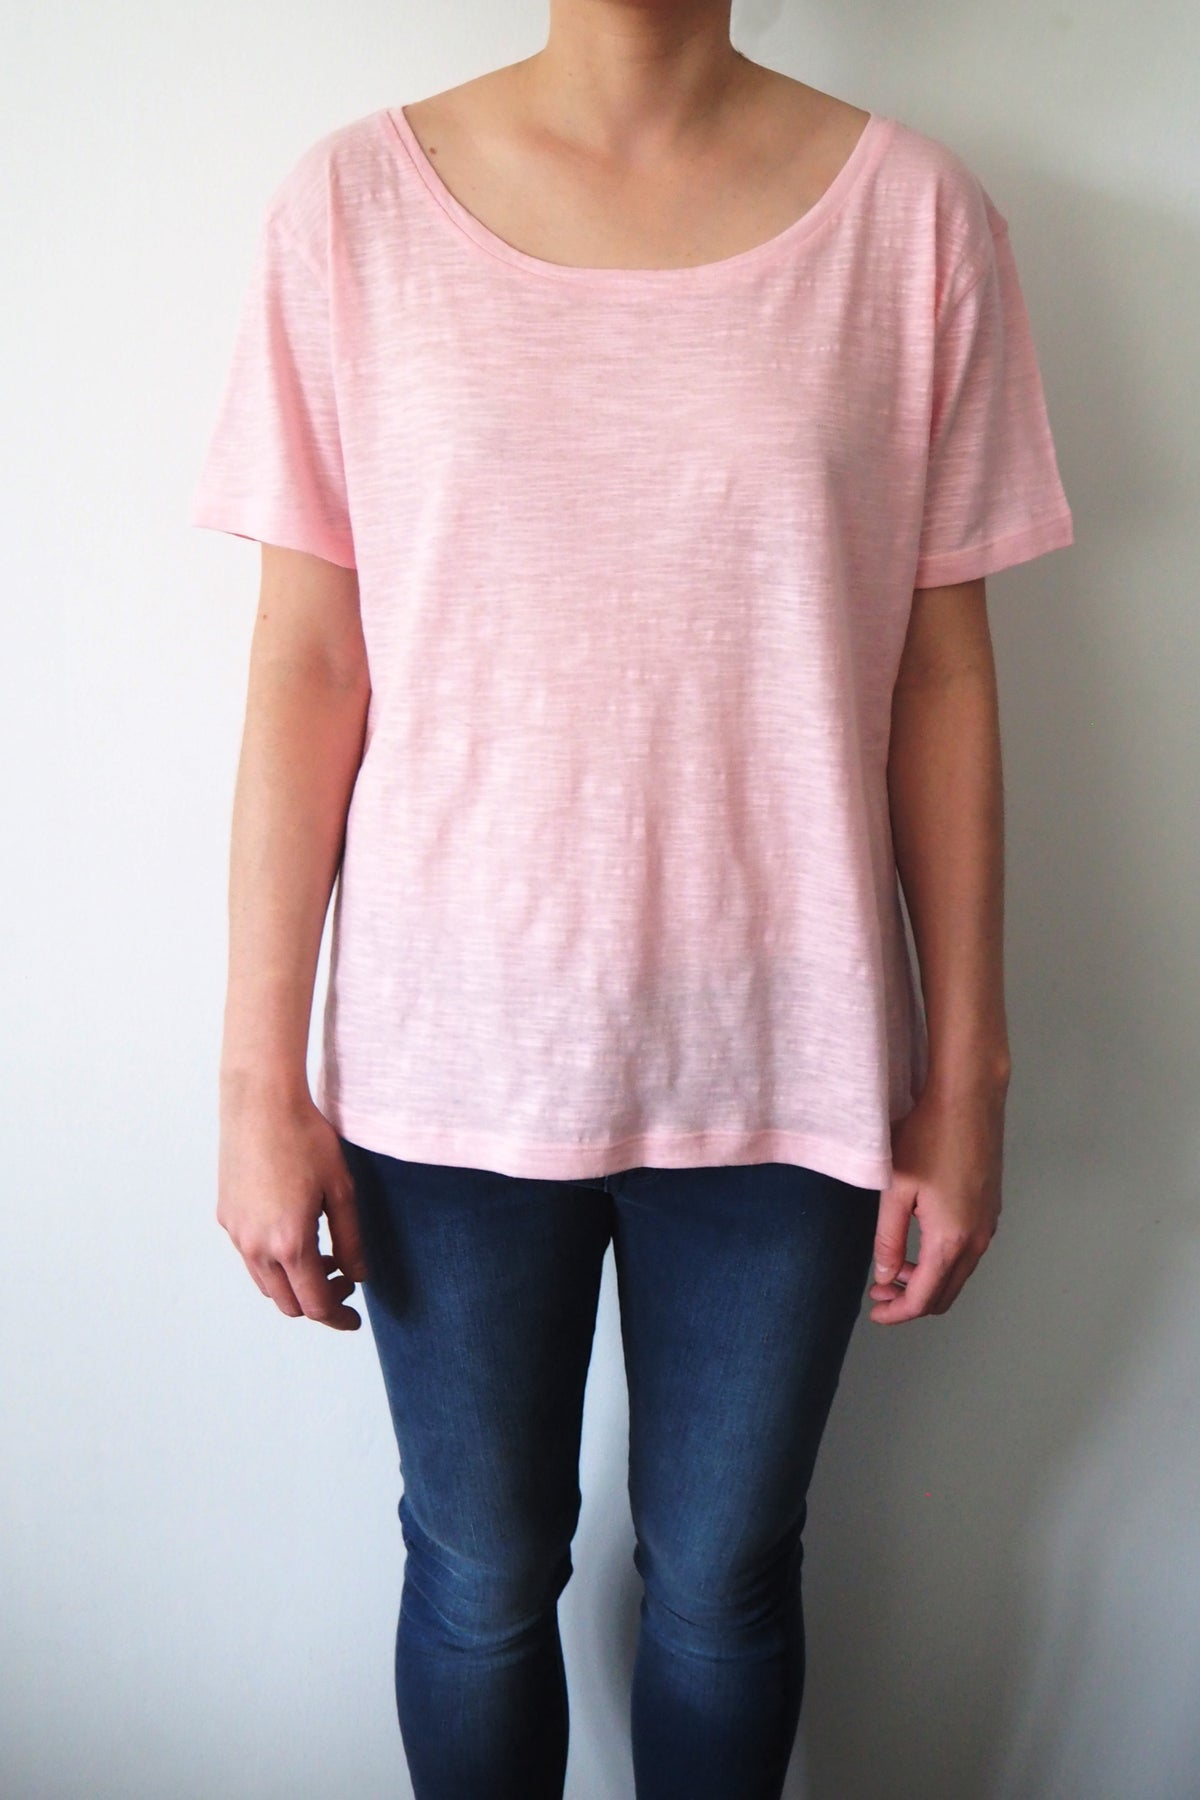 *New Item* Pink Round Neck T-shirt